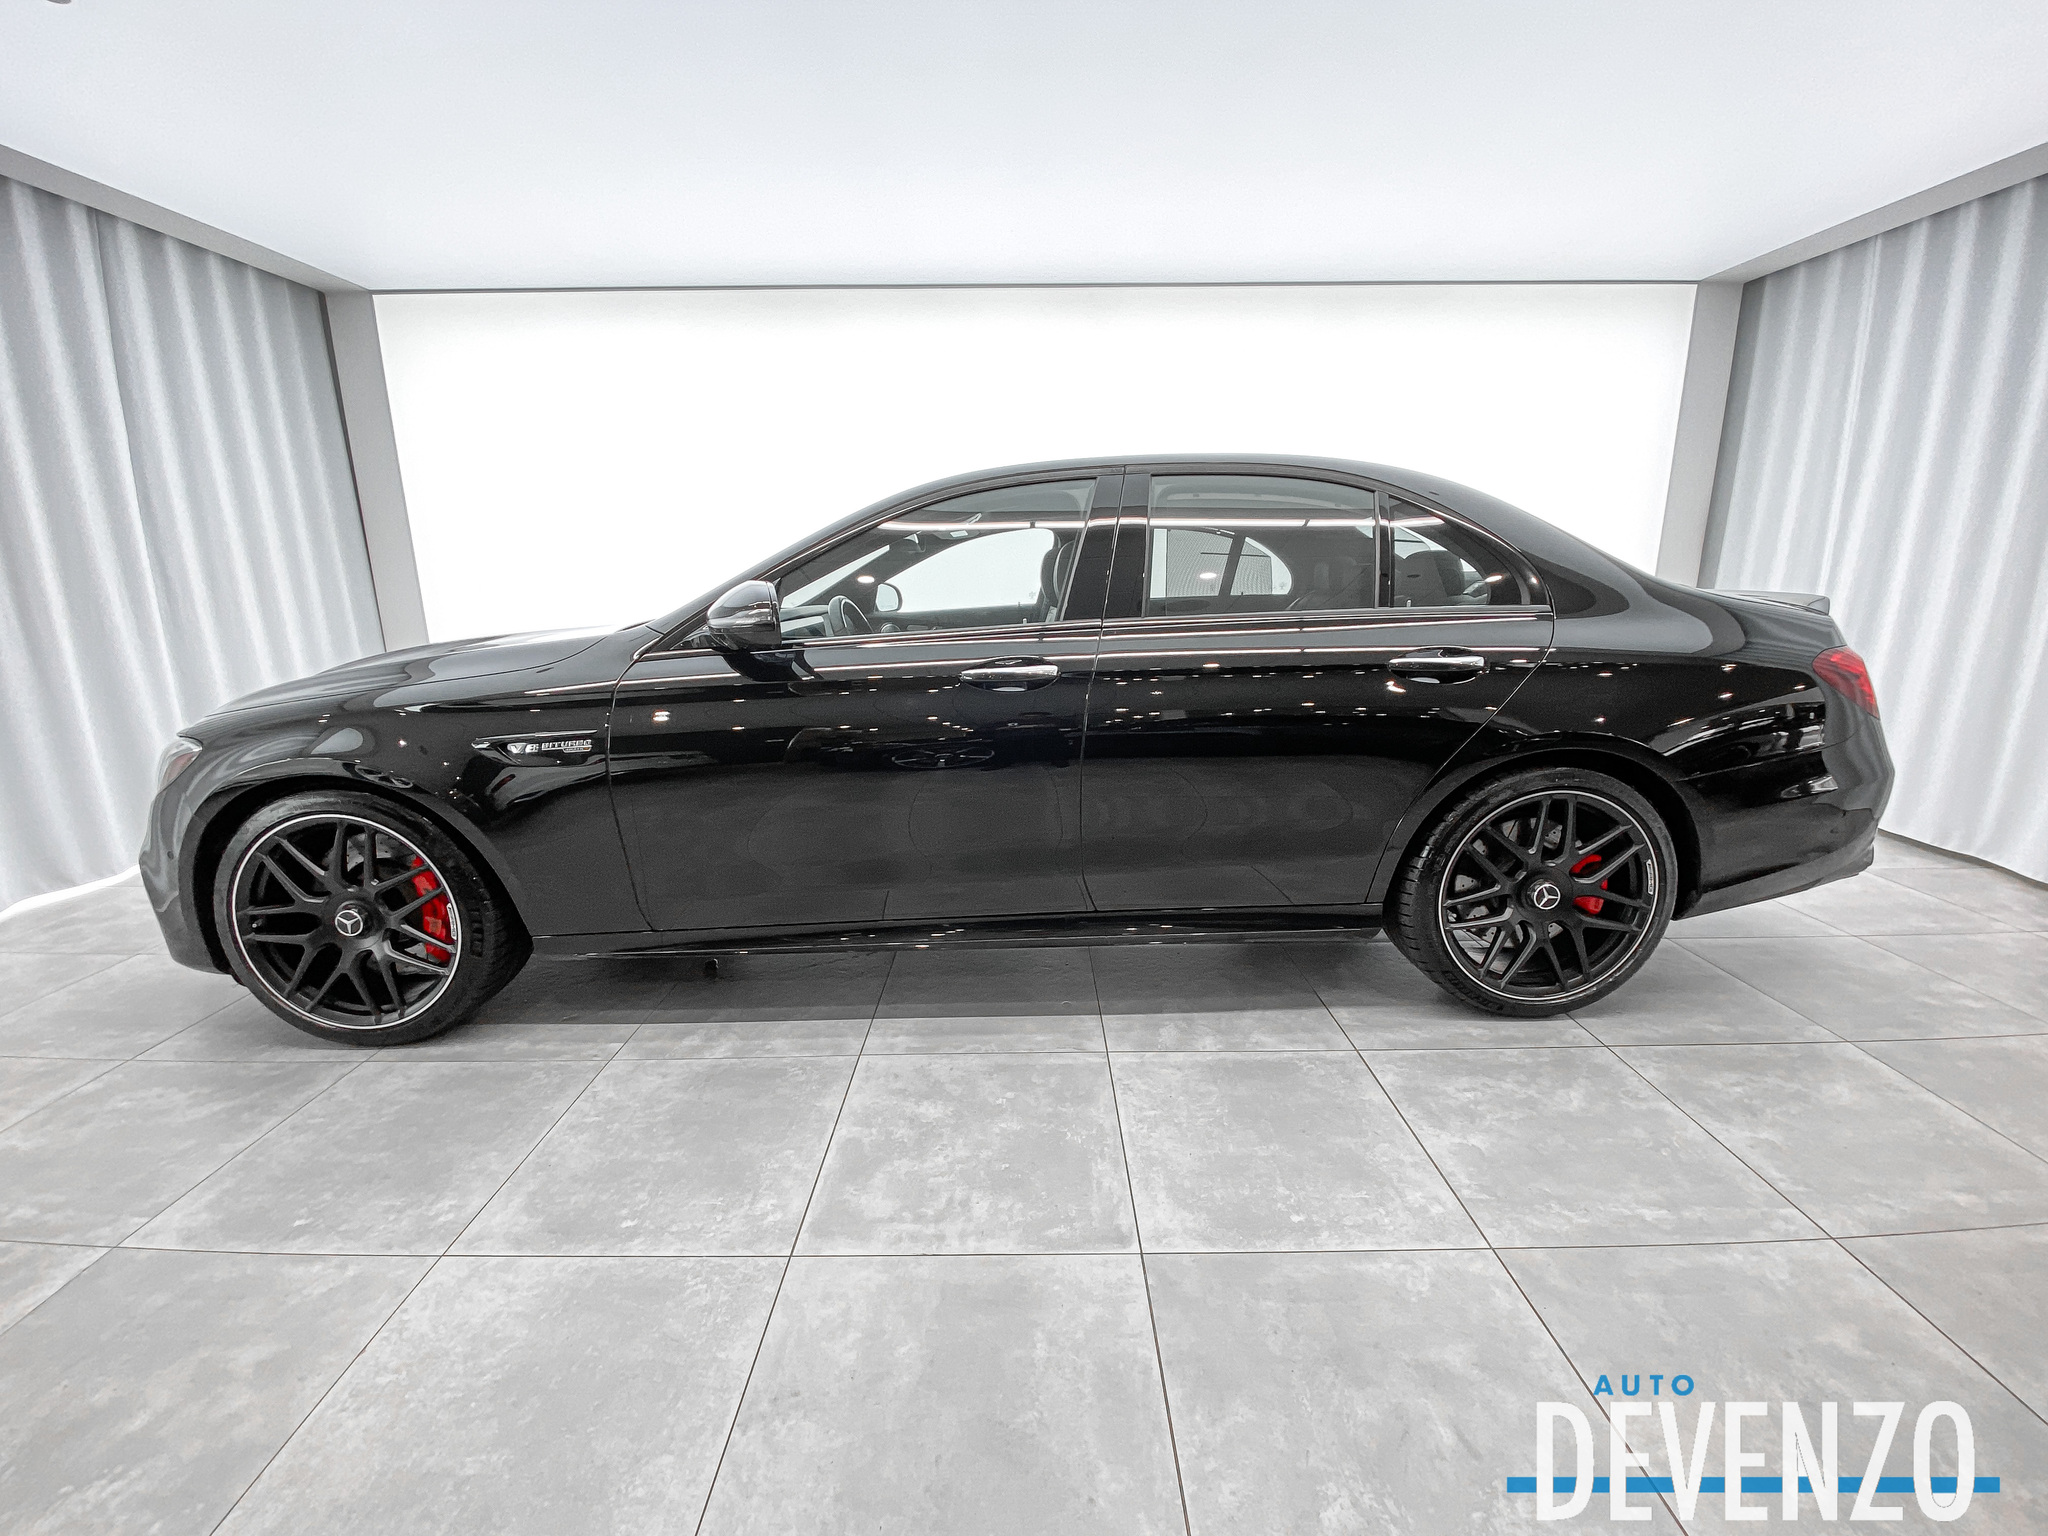 2018 Mercedes-Benz E-Class AMG E63 S 4MATIC+ NIGHT + DRIVERS PACKAGE complet